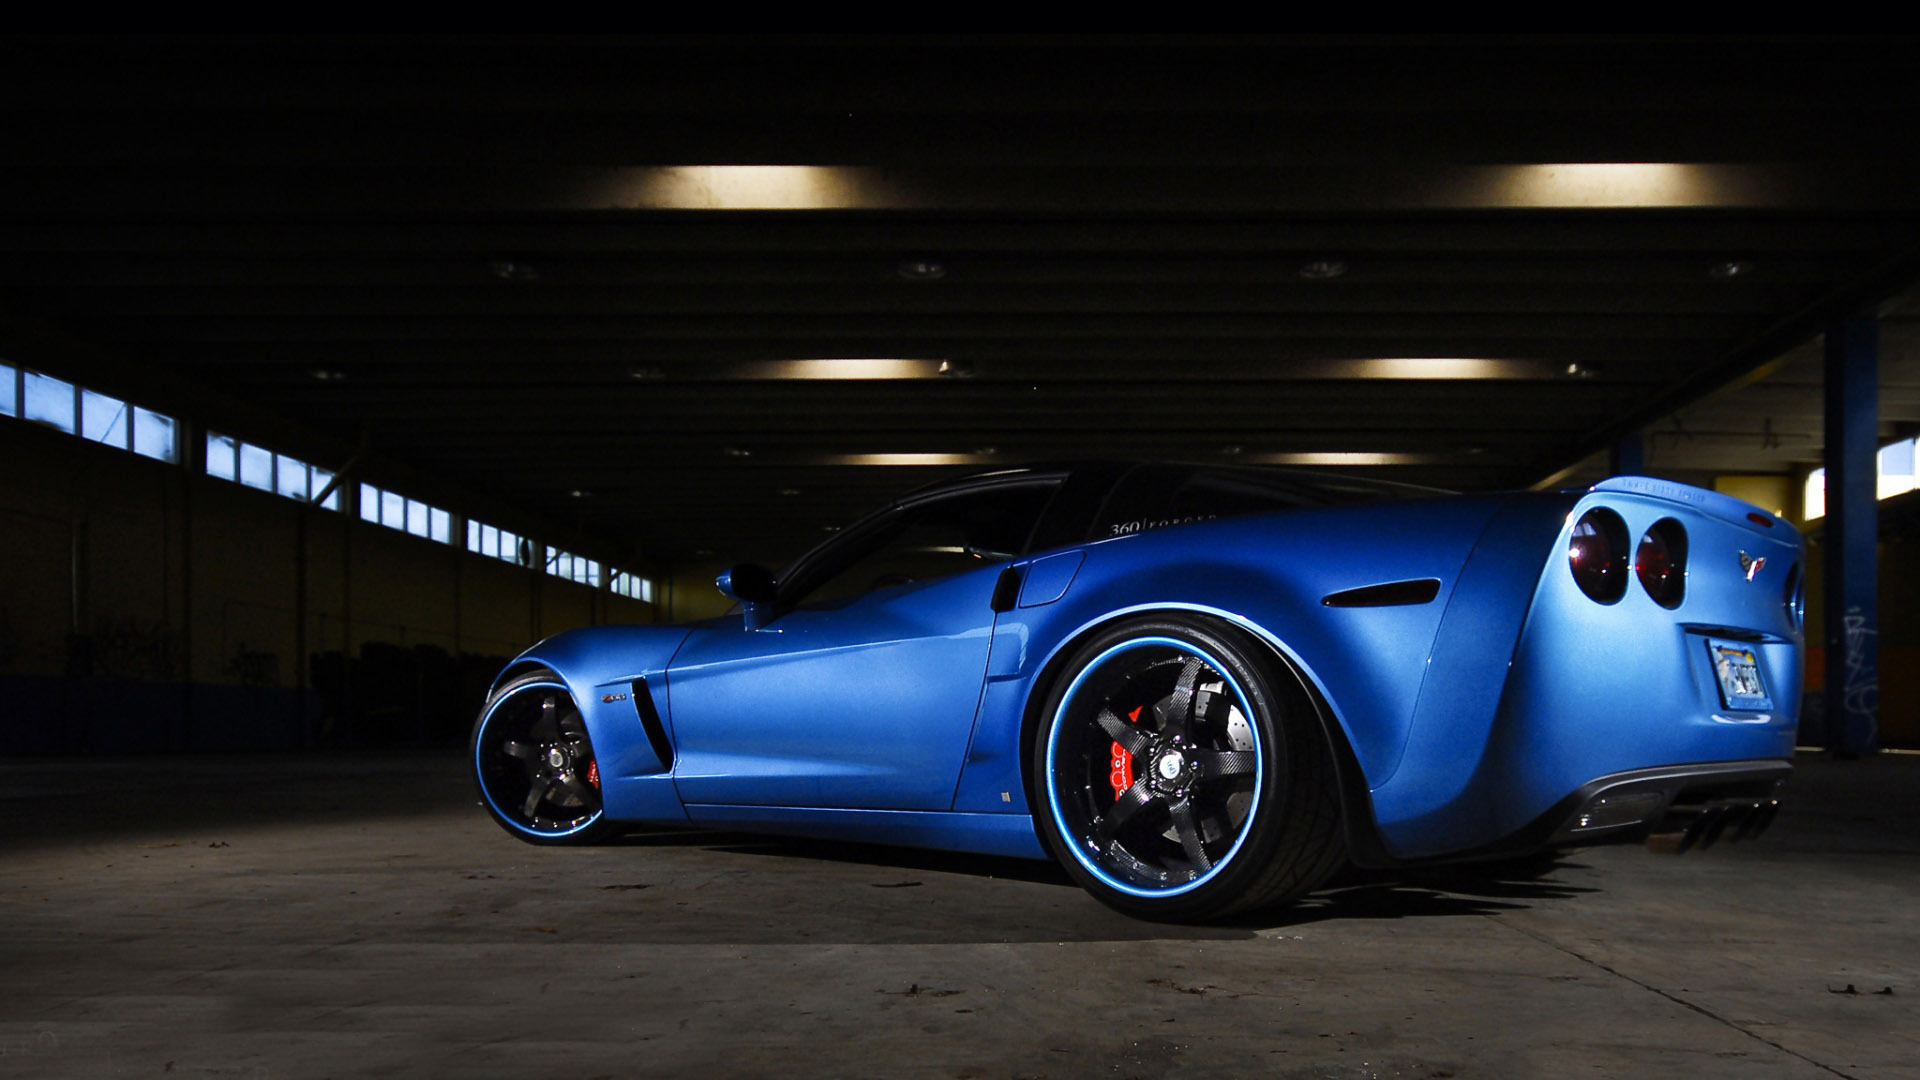 2014 Corvette Zr1 Blue